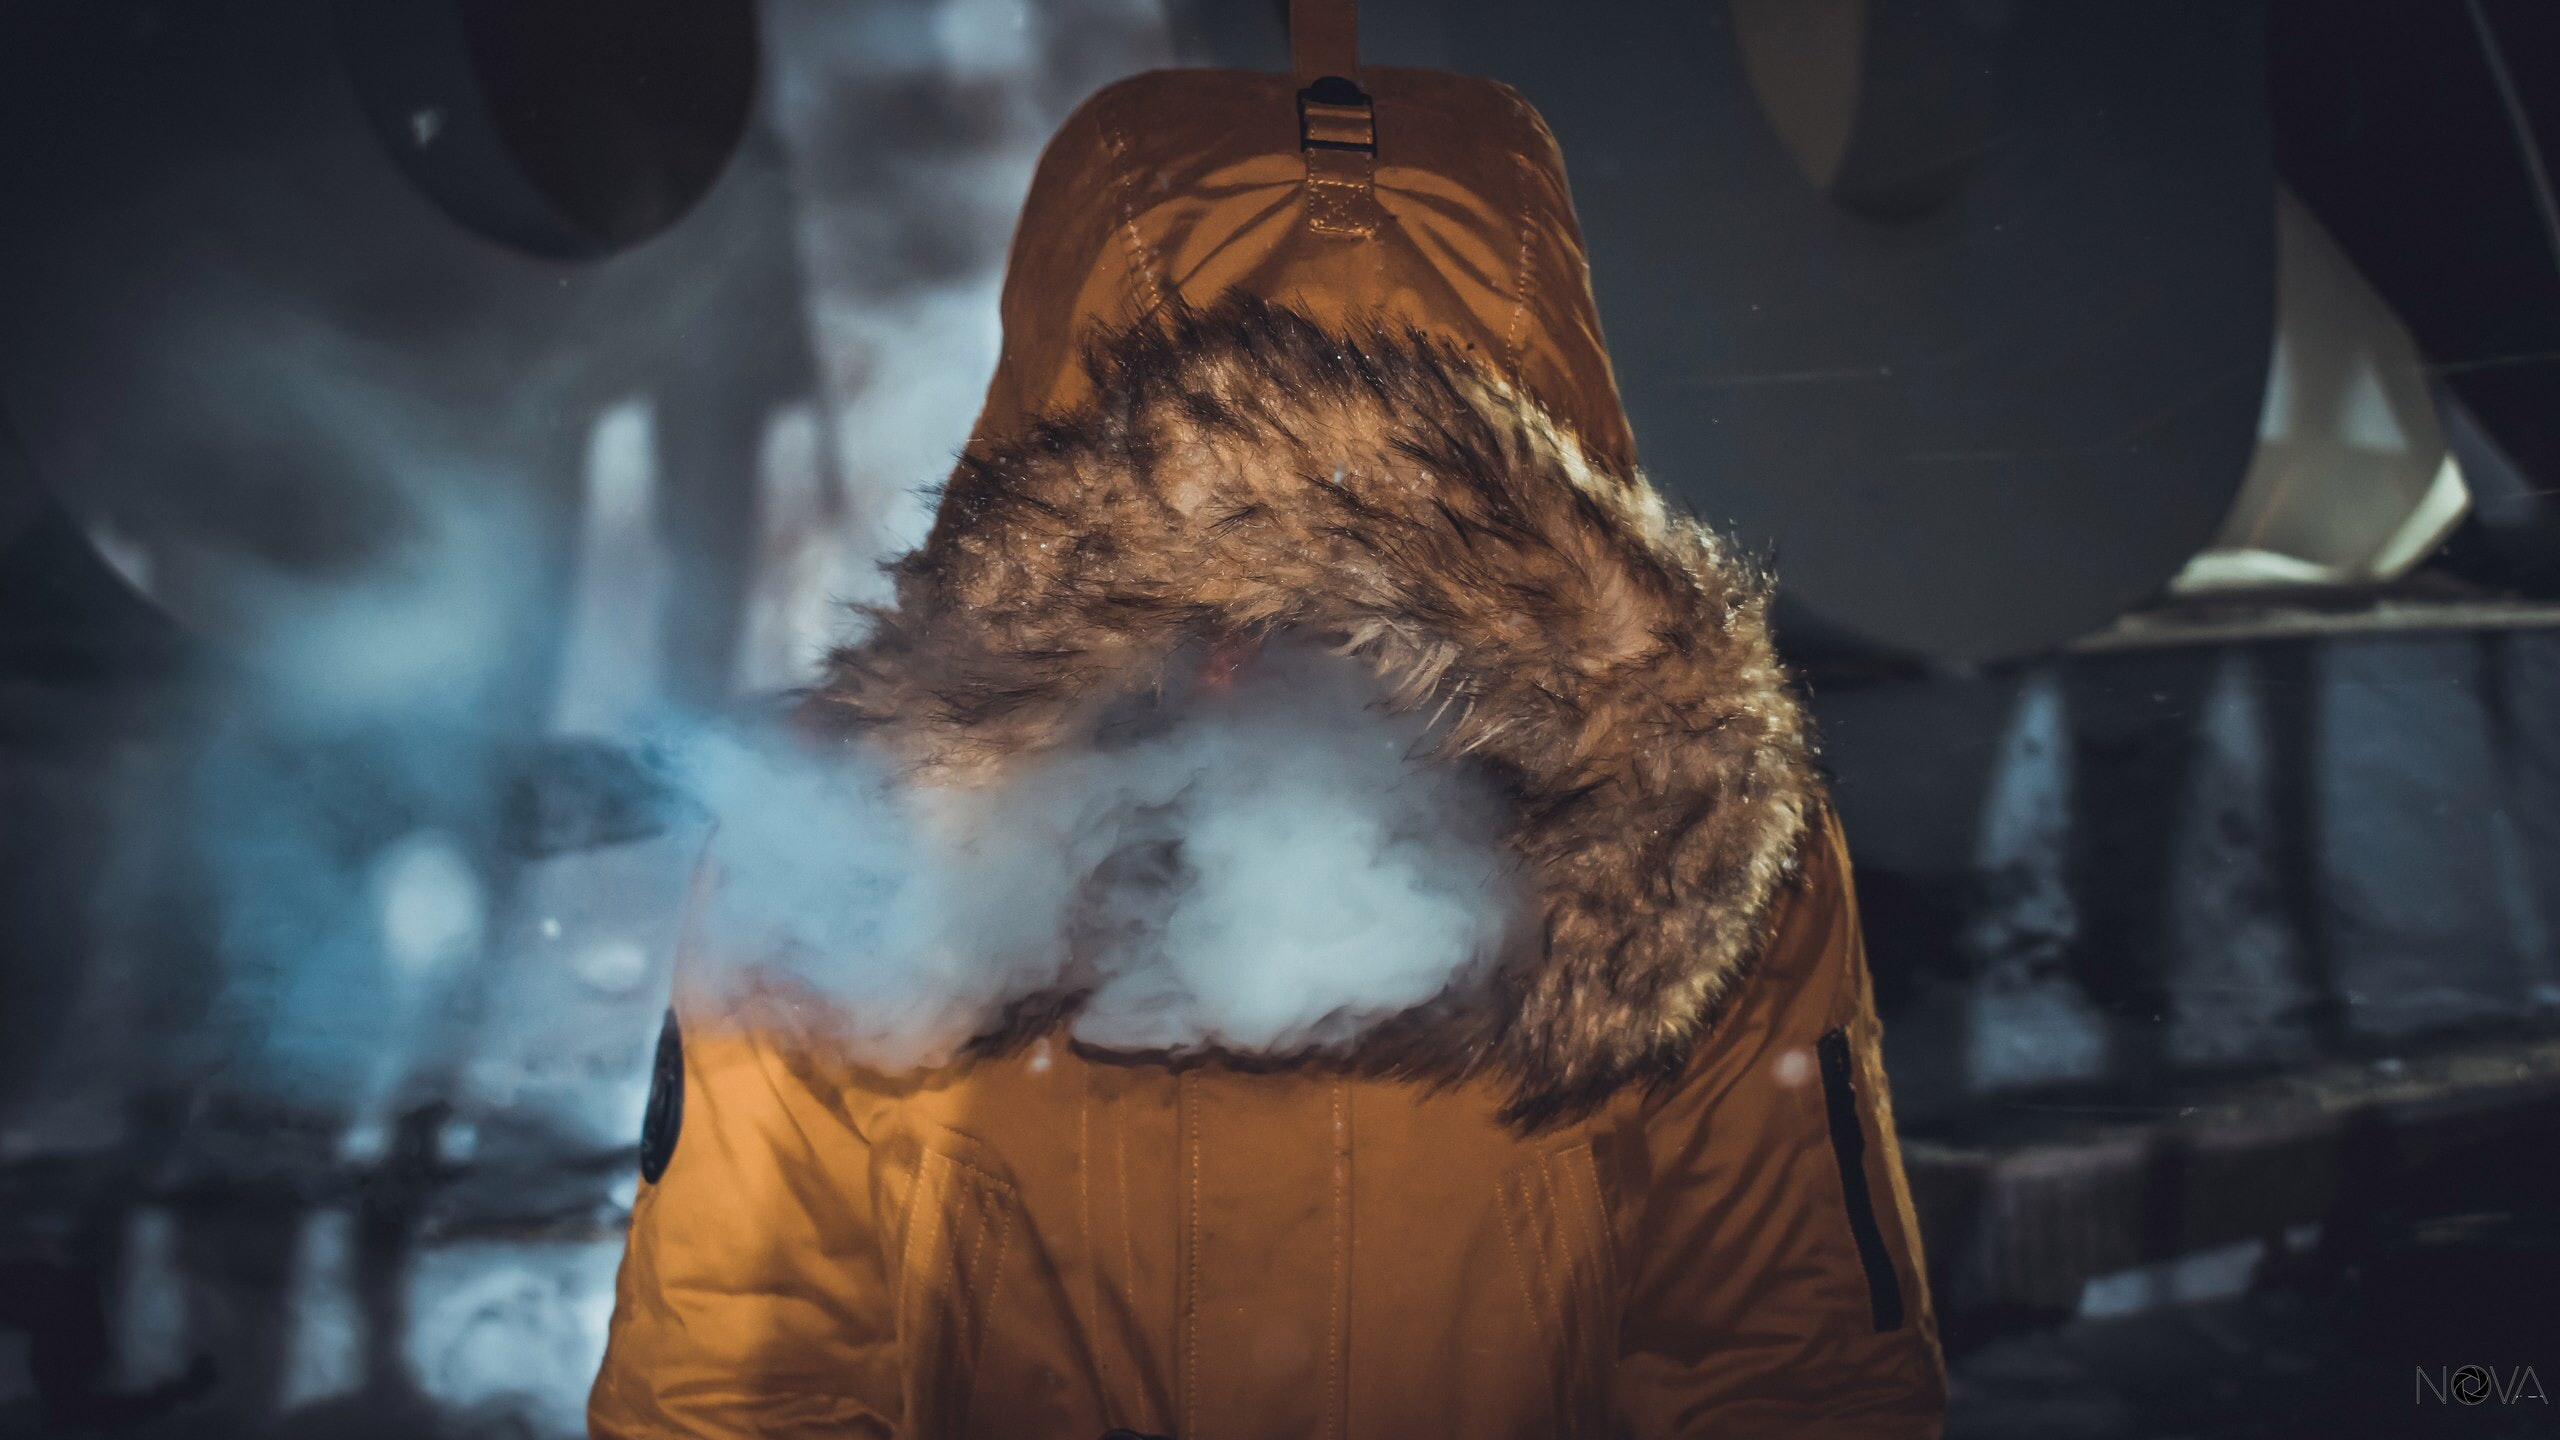 Anonymous person in a furry hooded coat exhaling smoke